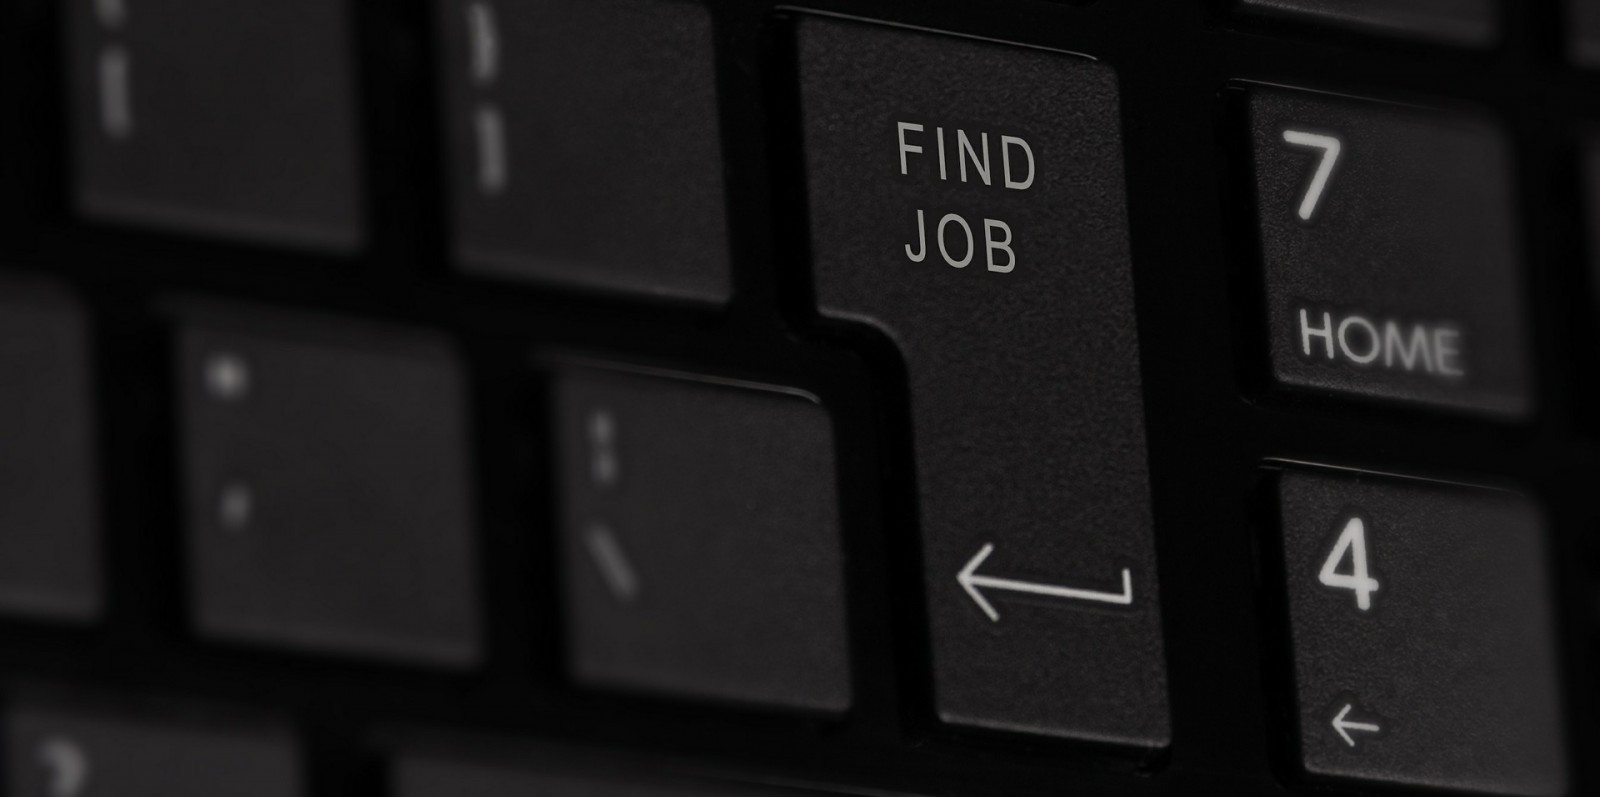 Keyboard with 'Find Job' key.